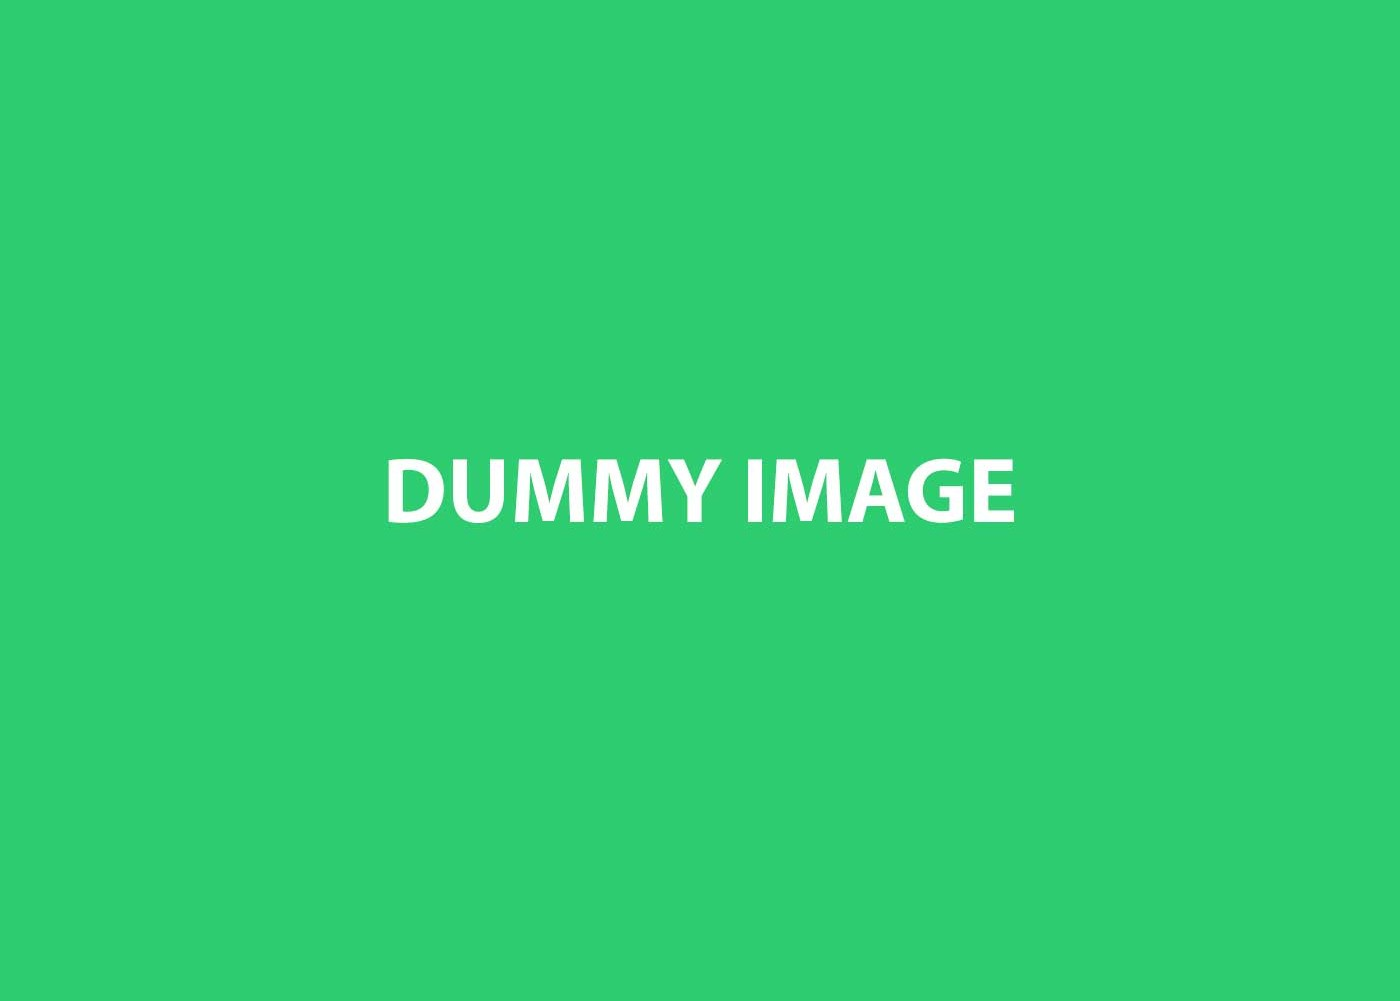 dummy-image-green